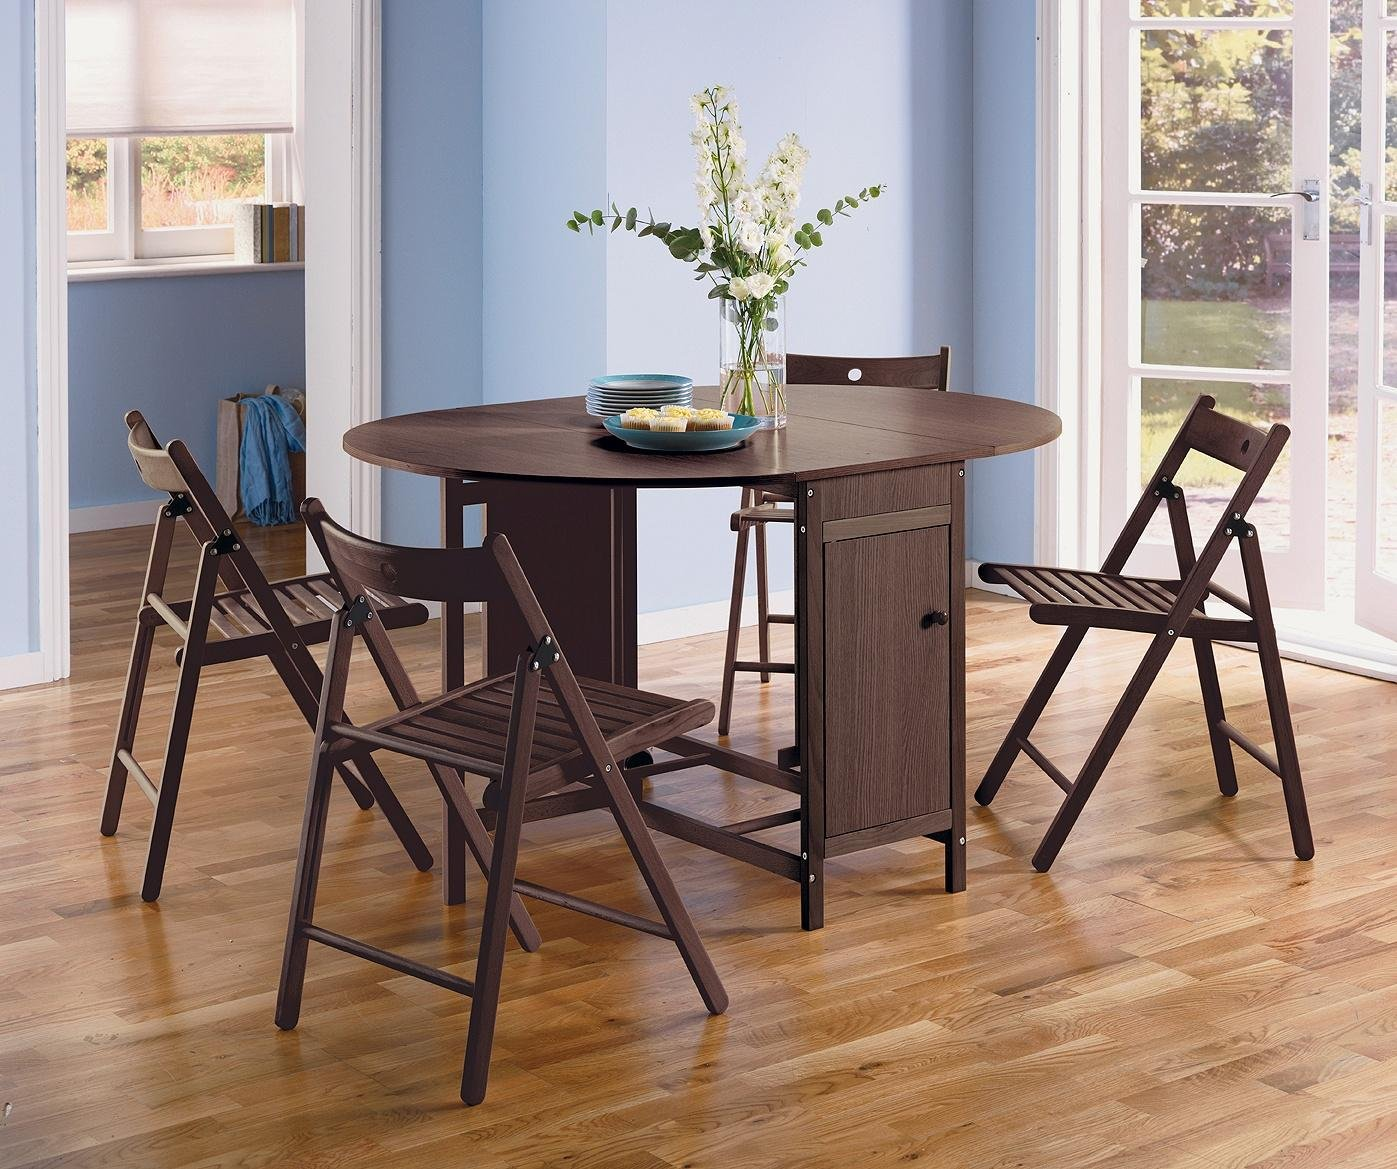 Sale On Home Butterfly Extendable Oval Table Amp 4 Chairs